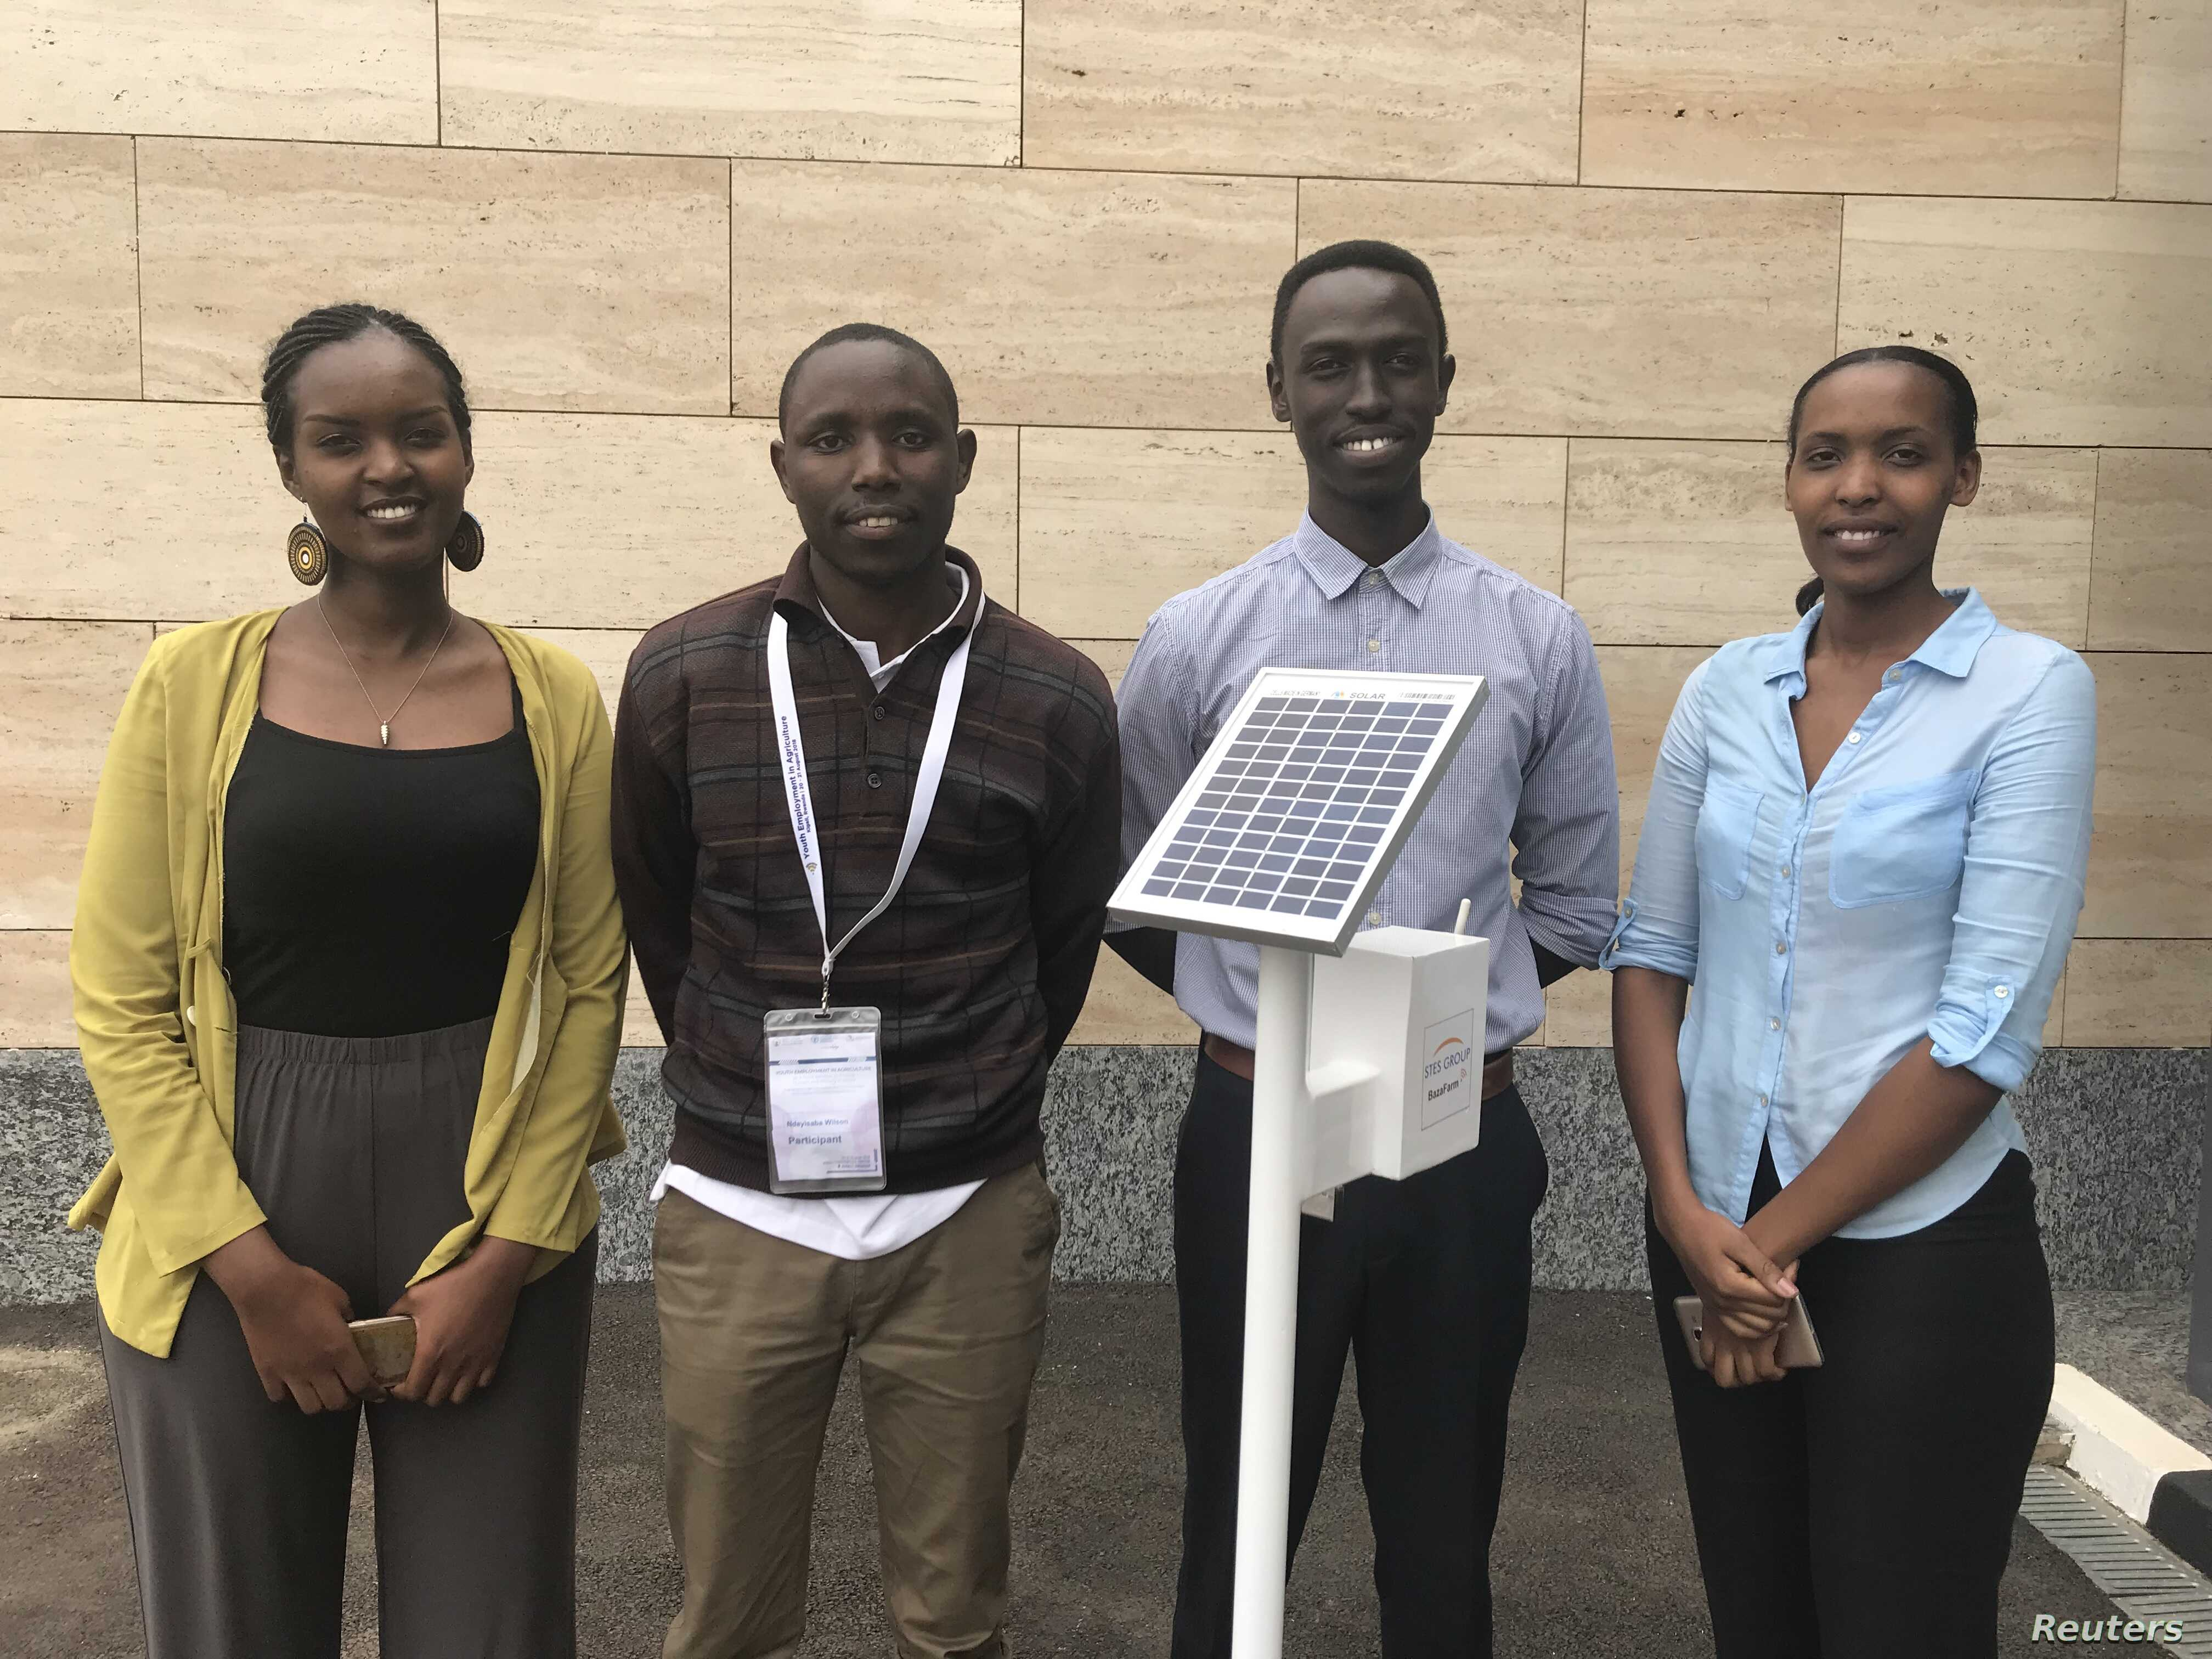 Four of the team members of Rwanda's STES Group pose with their $400 solar-powered device with sensors and connectivity that can optimise water and fertiliser use, in Kigali, Aug 21, 2018.